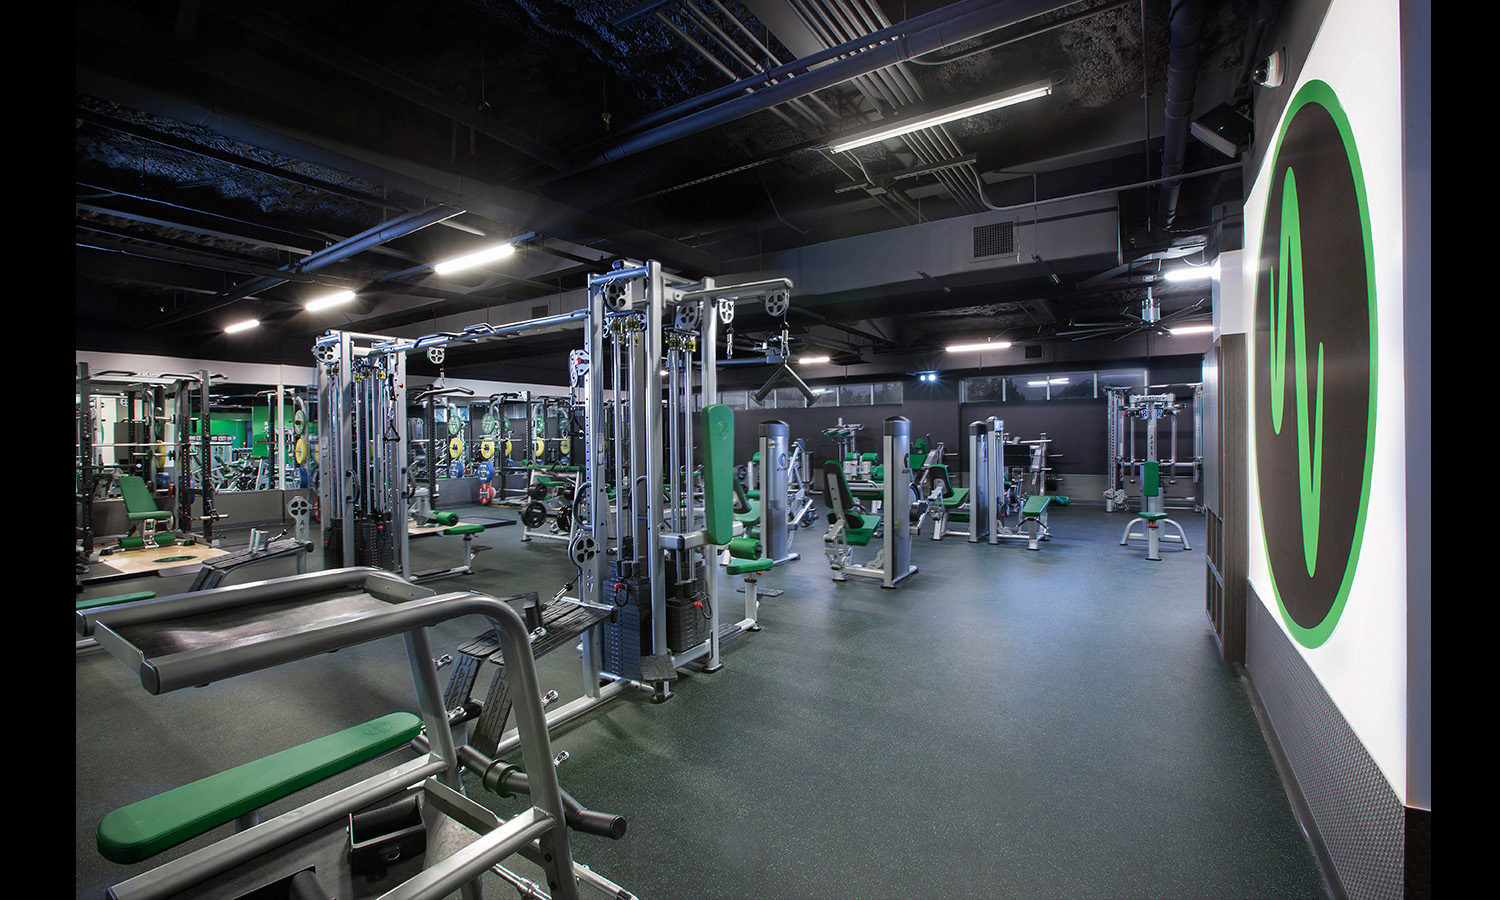 Atlas Fit Austin Texas Interior